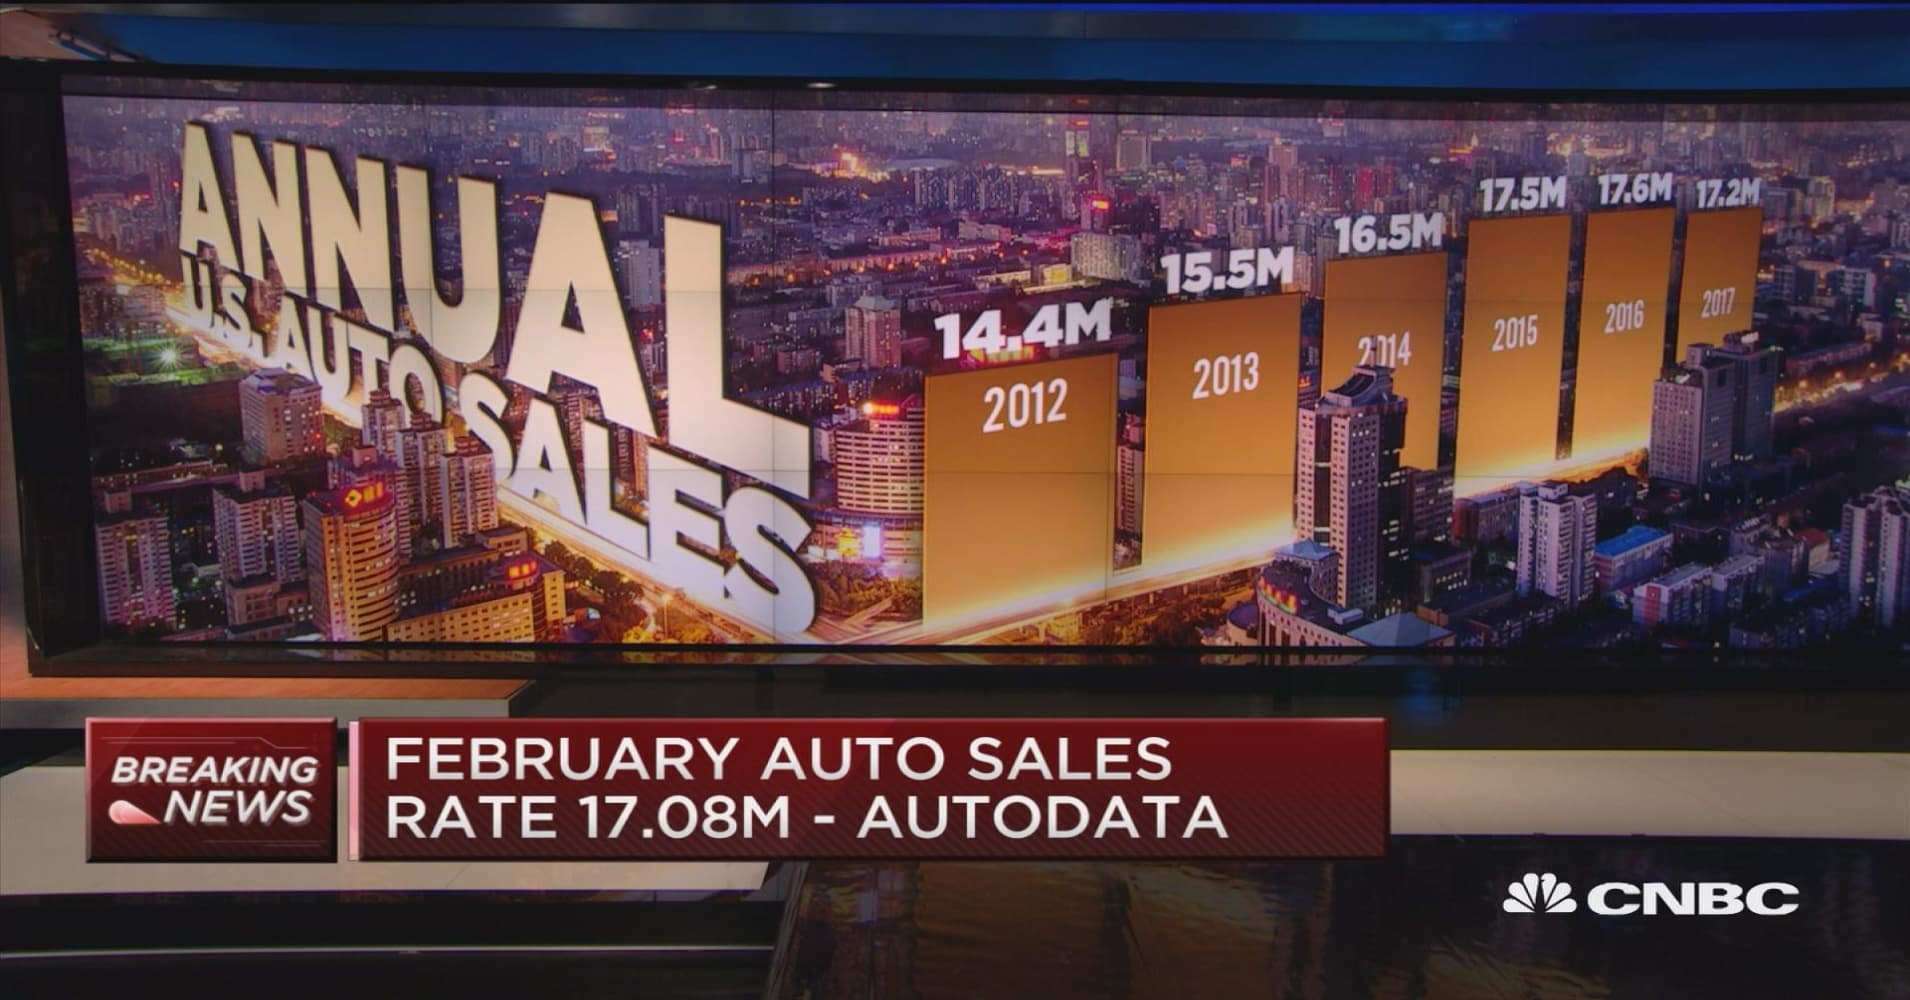 February auto sales rate 17.08 million says Autodata